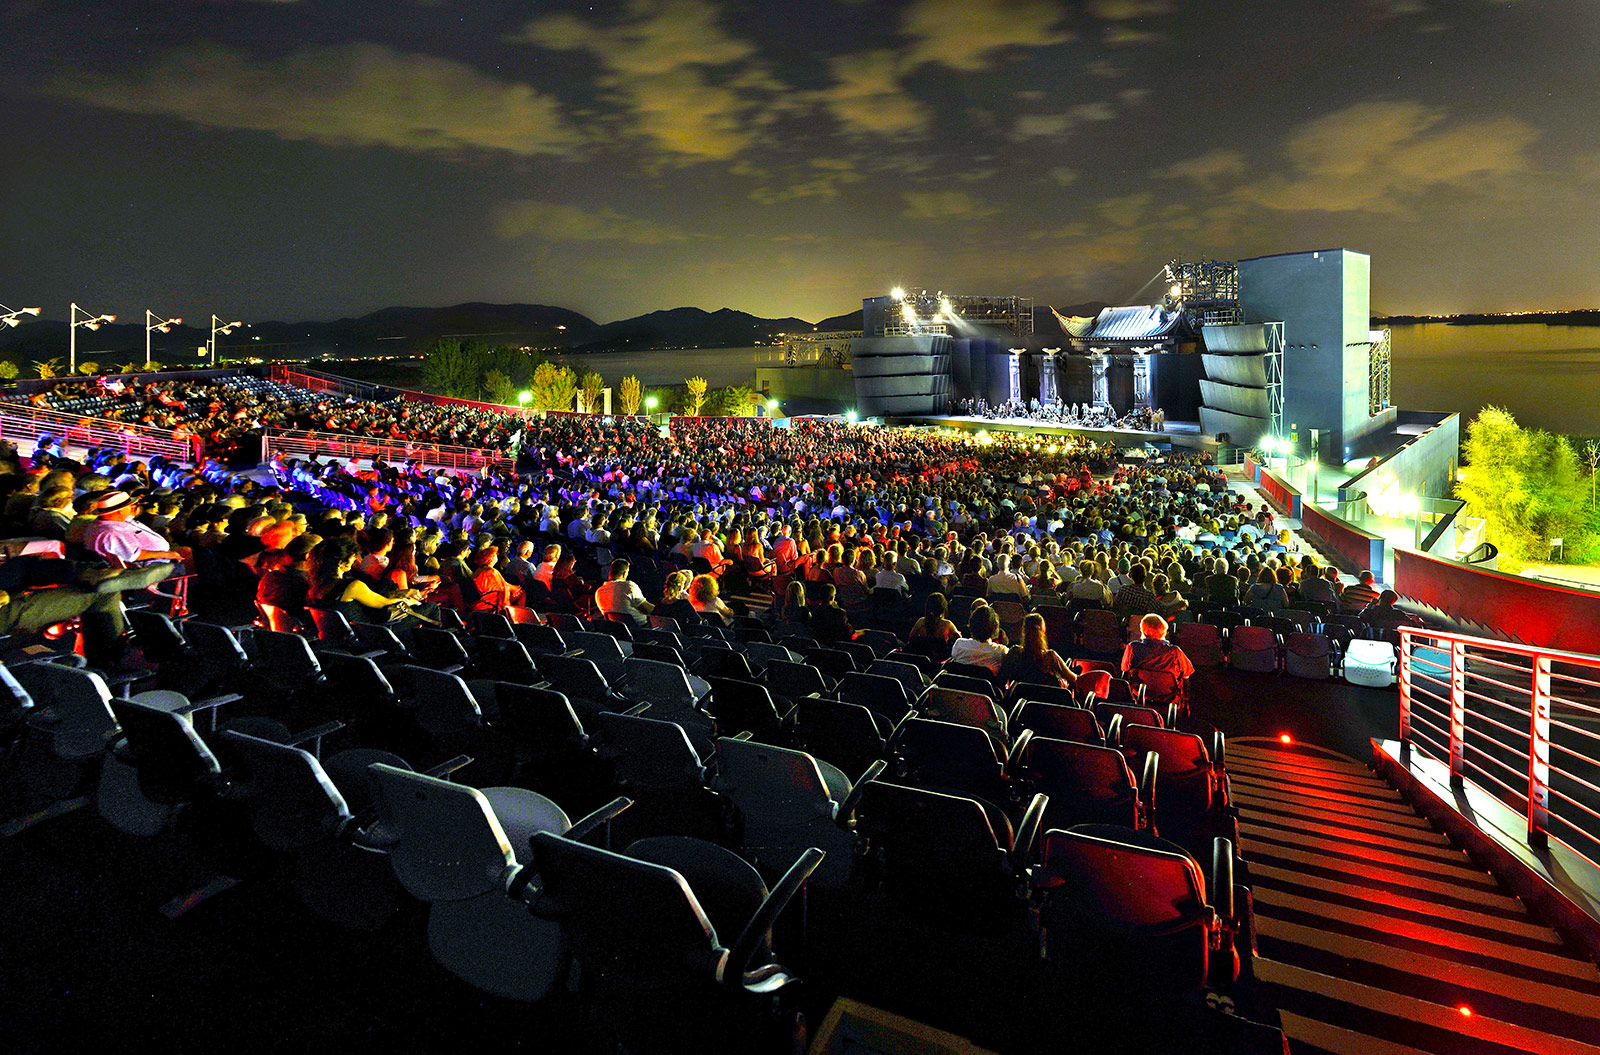 It's Opera Giacomo, but not as we know it - Turandot at Torre del Lago